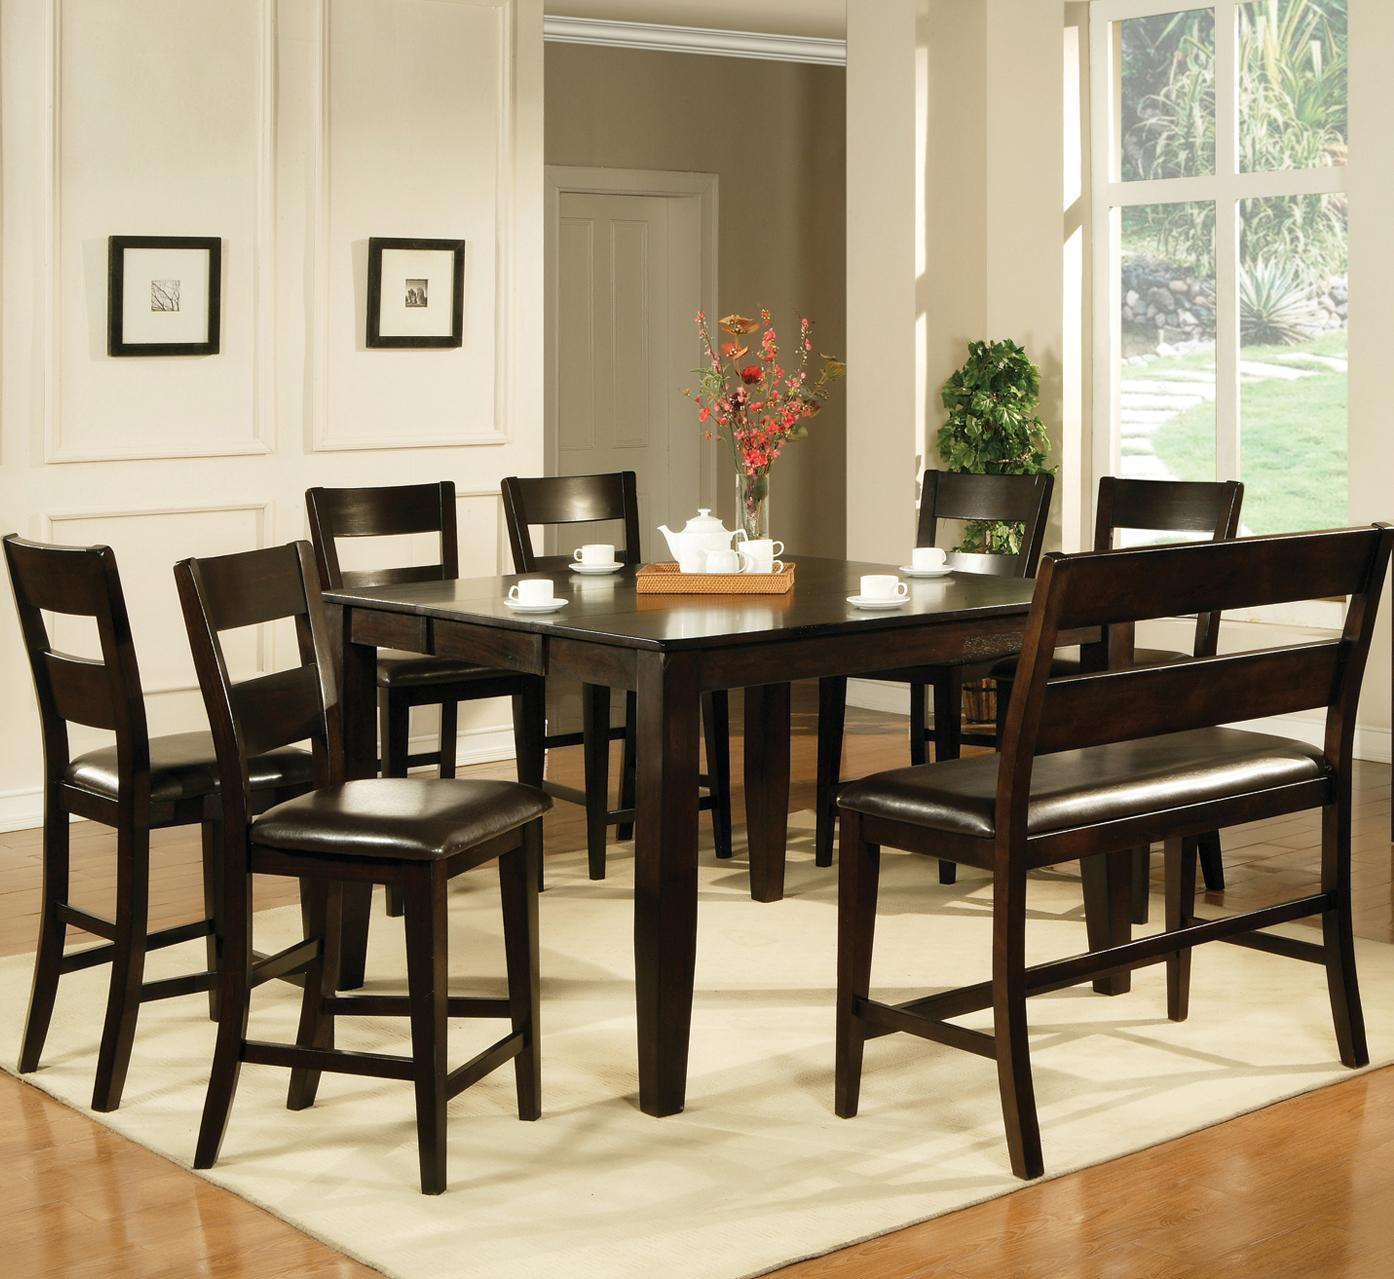 steve silver victoria 8 piece counter height dining set with bench furniture superstore nm. Black Bedroom Furniture Sets. Home Design Ideas